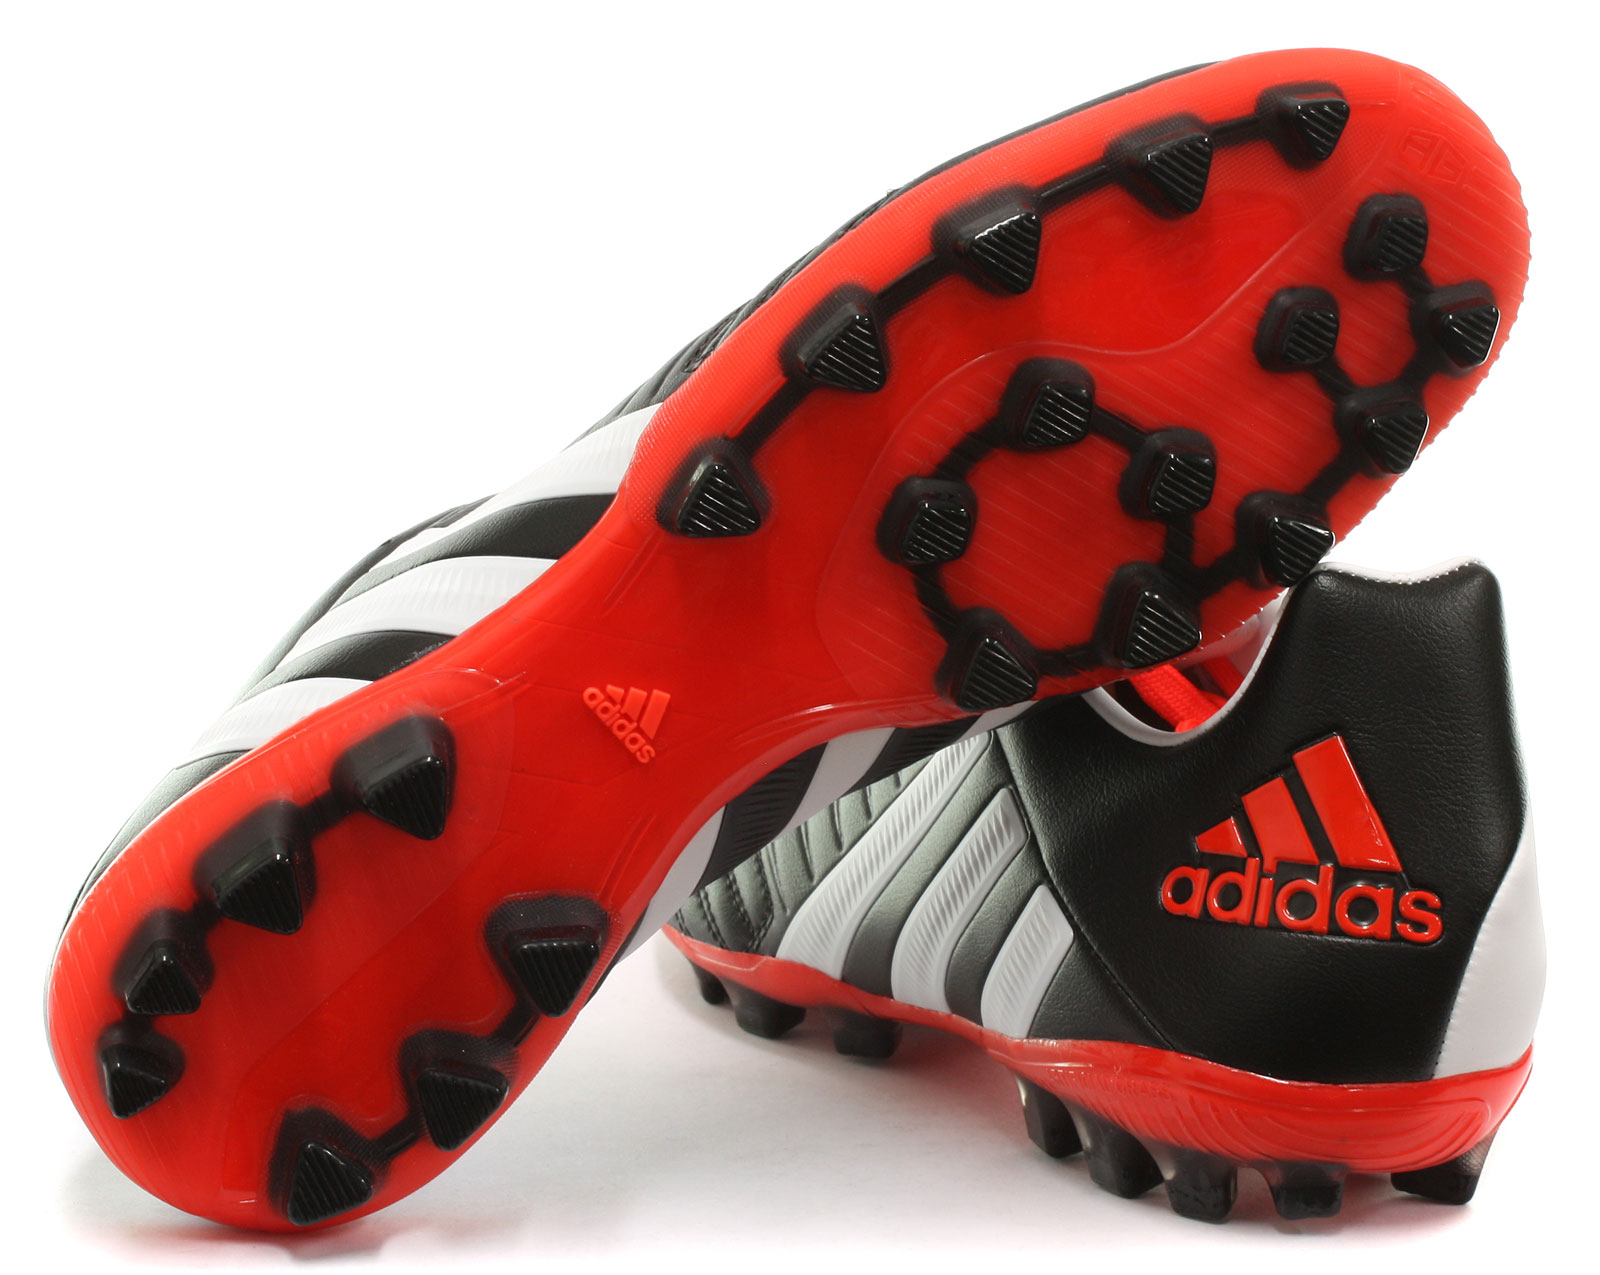 d356268caf32 adidas Predator Incurza TRX AG Artificial Ground Mens Rugby Boots ALL SIZES  3 3 sur 6 Voir Plus